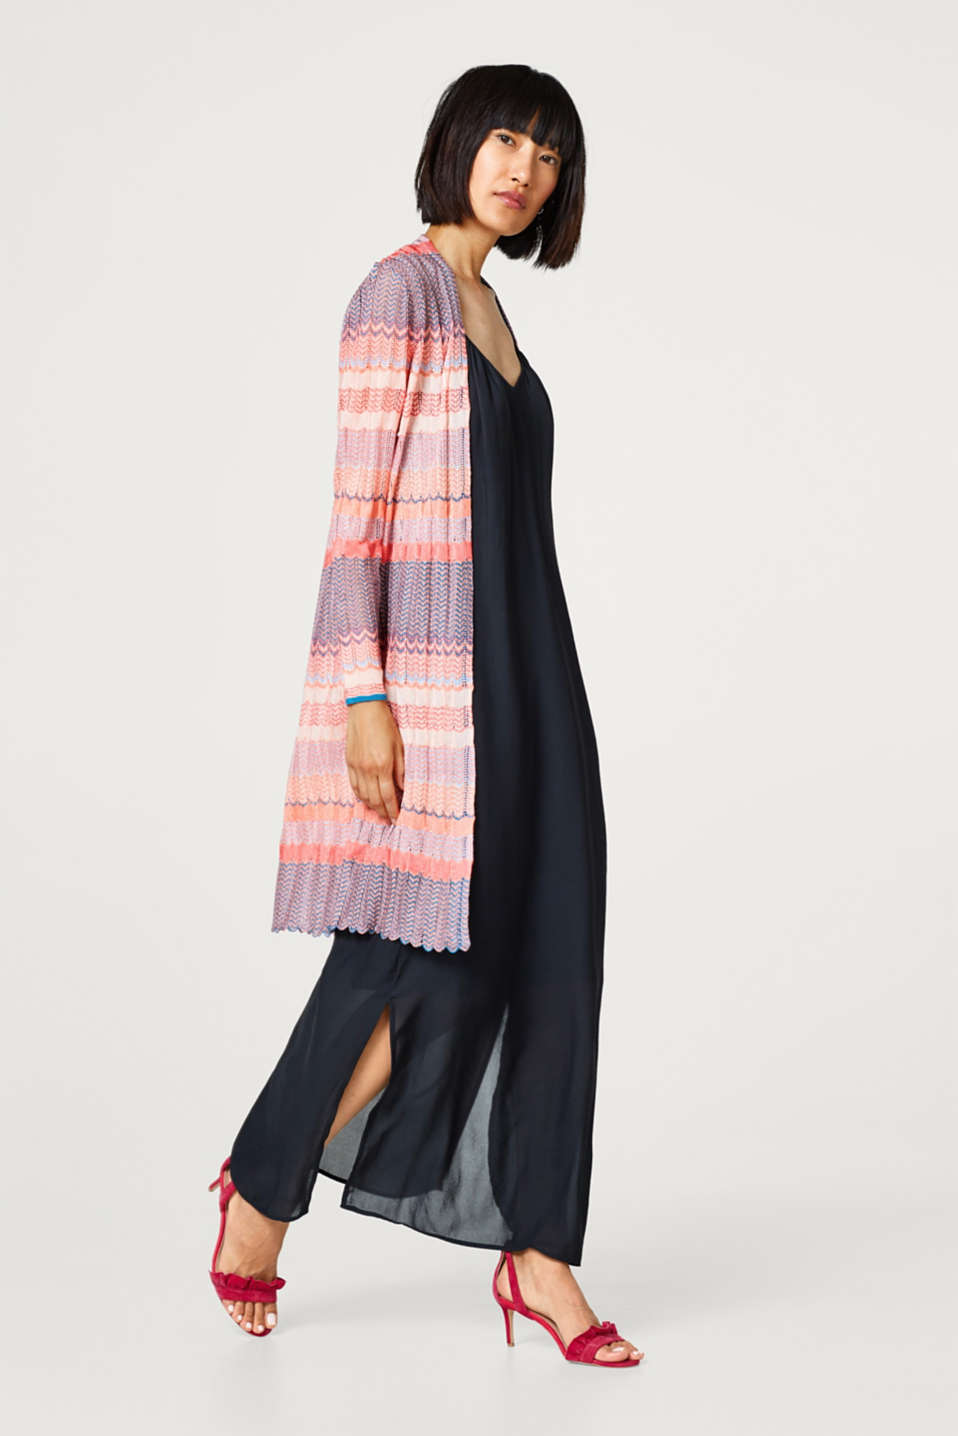 Openwork cardigan with a colourful zigzag pattern